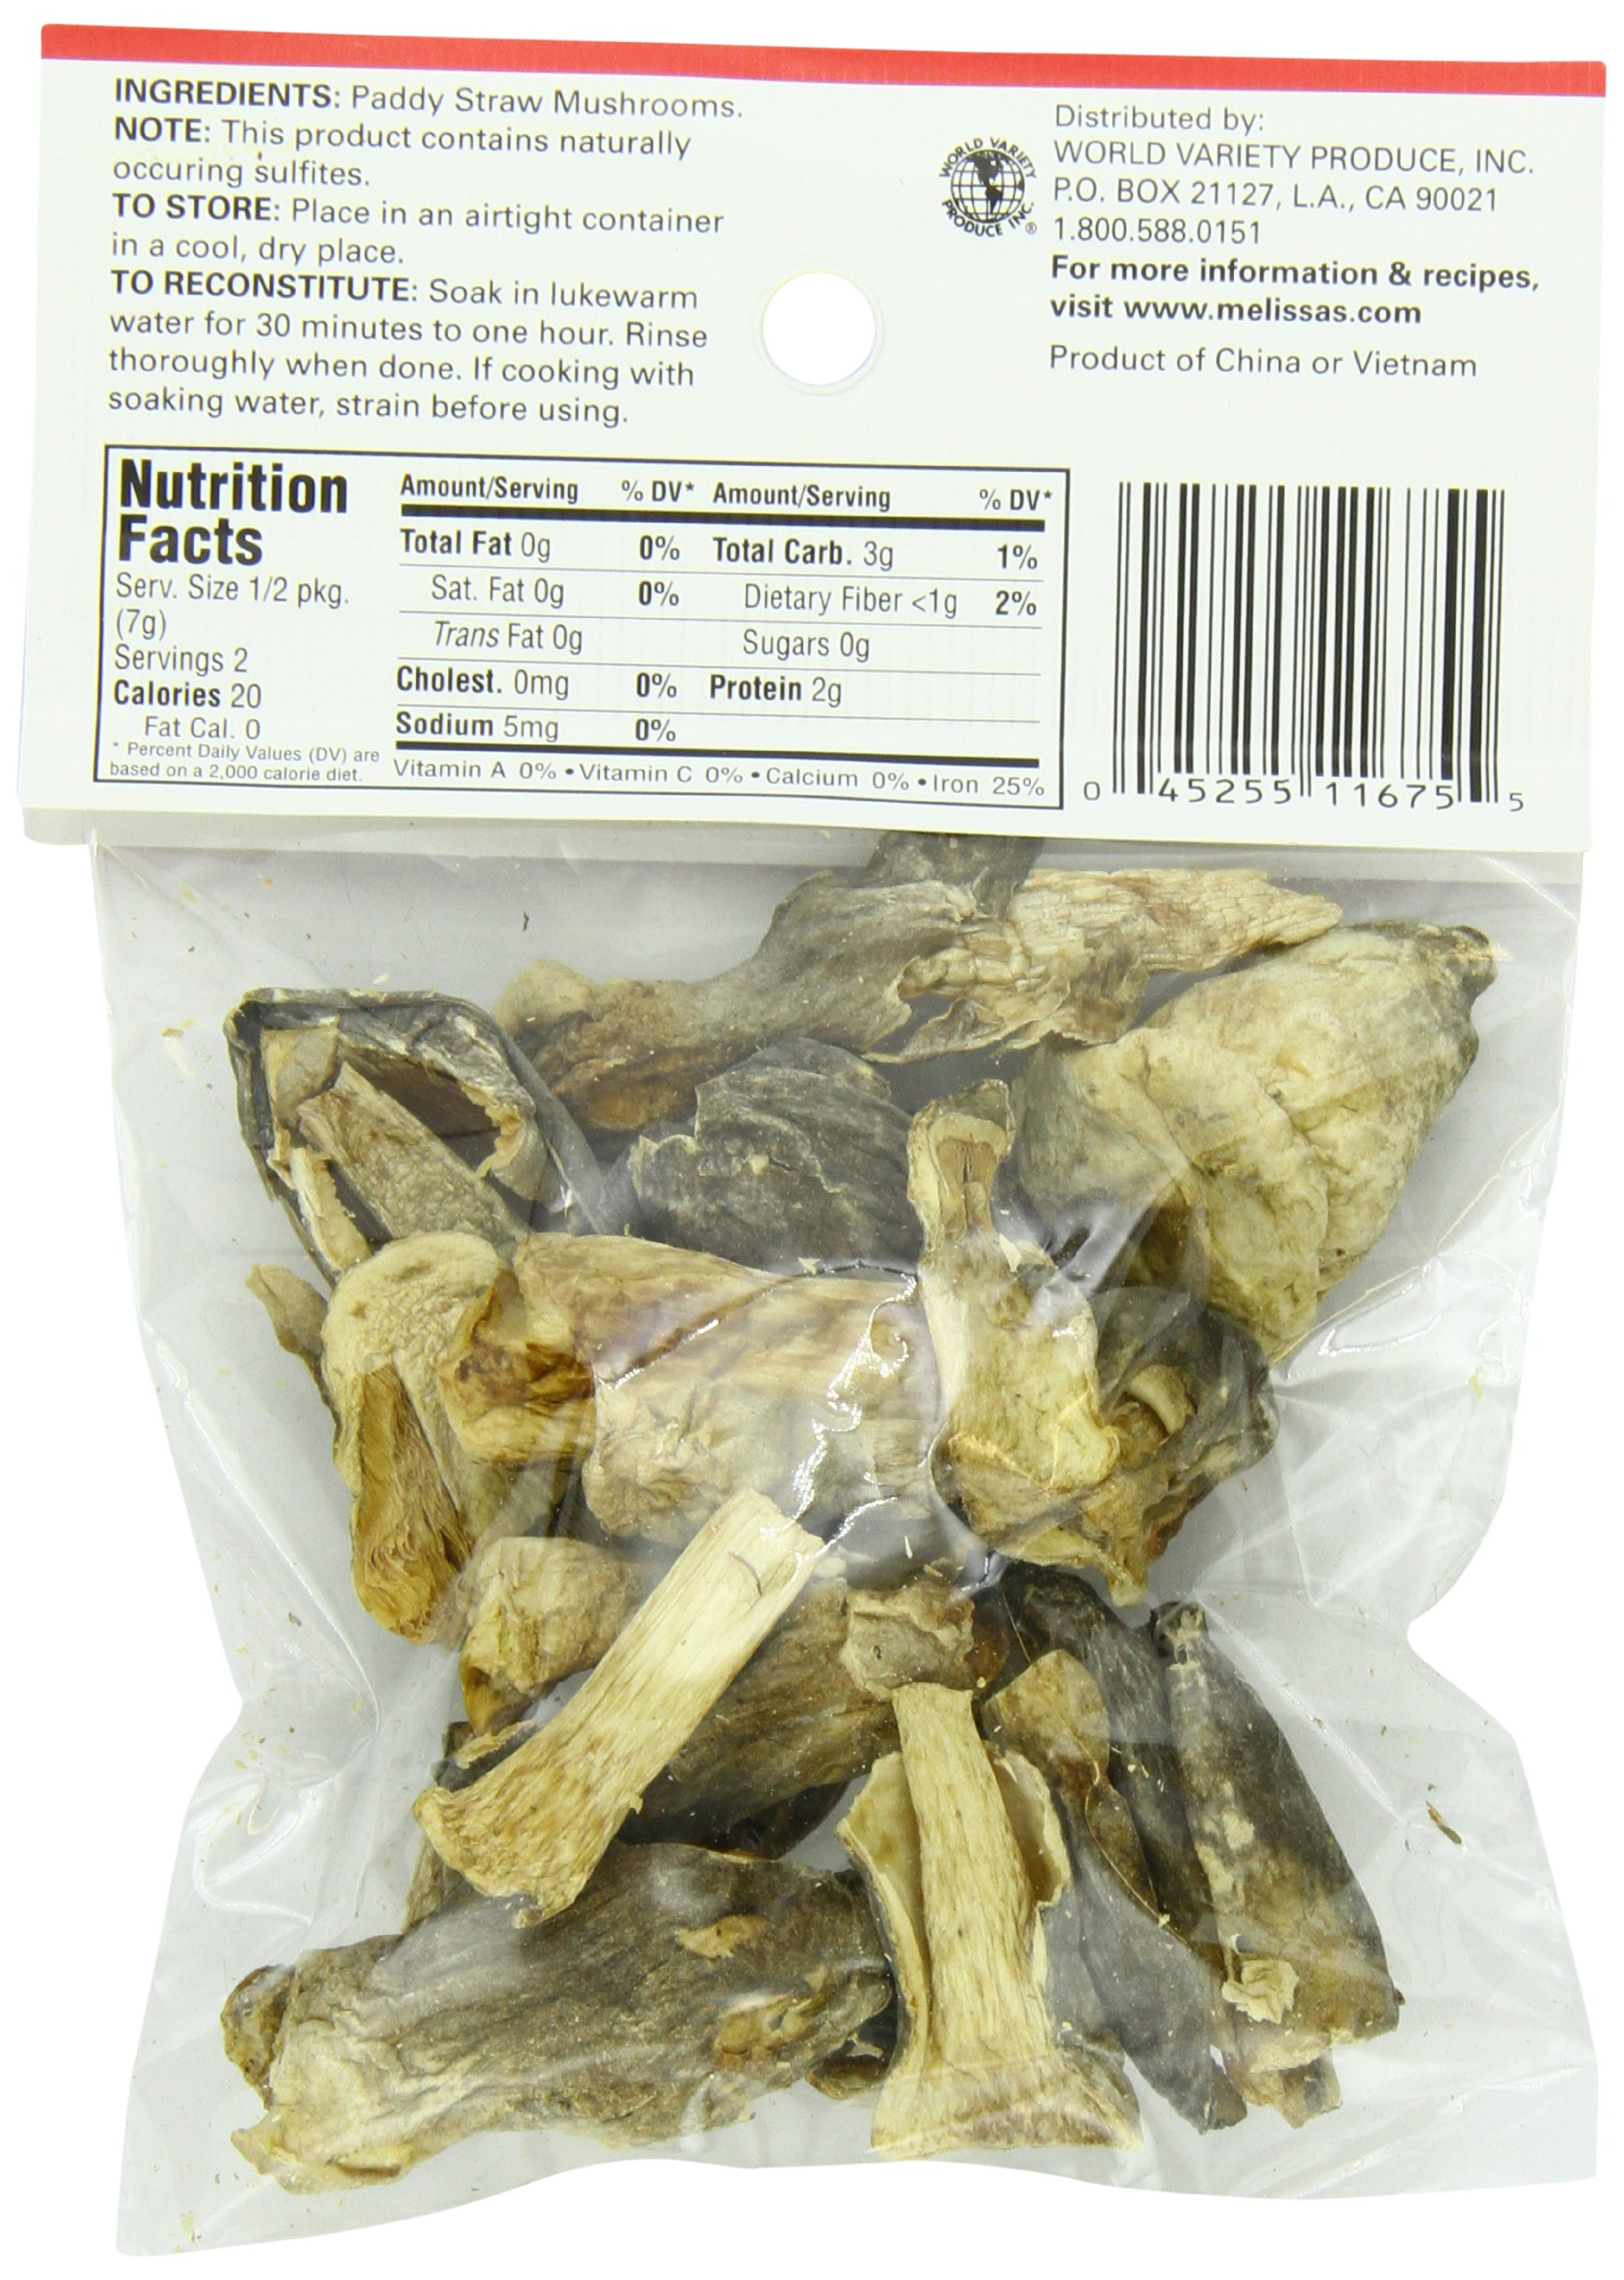 Melissa's Dried Patty Straw Mushrooms 0.5-Ounce Bags (Pack of 12), Dried Wild Mushrooms, Rehydrate and Cook as Fresh or Grind for Crusting Fish or Veal, Great for Cooking and Making Stocks by Melissa's (Image #3)